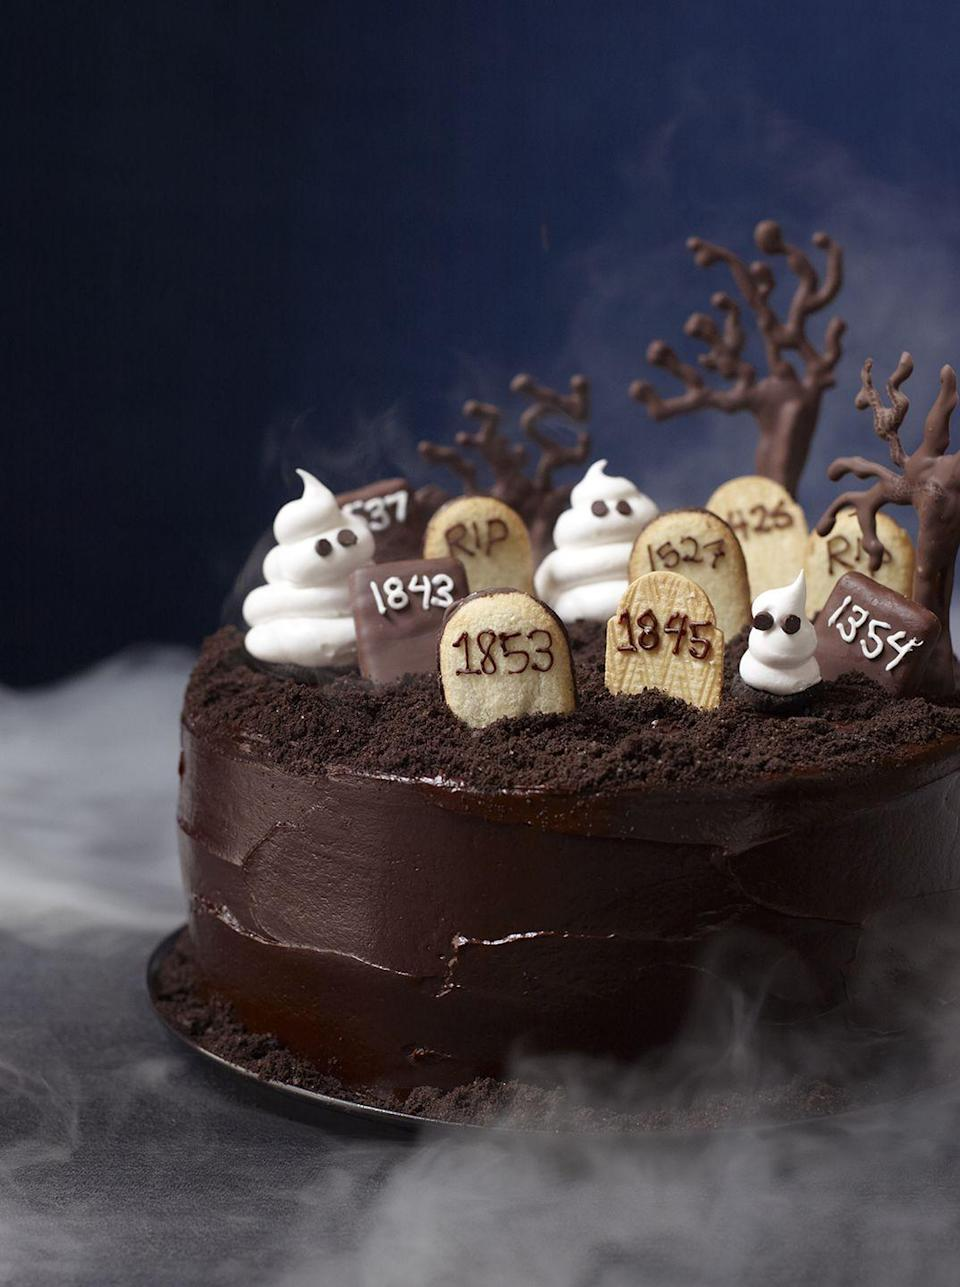 """<p>Espresso-tinged batter and bittersweet chocolate frosting? This cake may look scary but it sure is delicious. </p><p><em><a href=""""https://www.womansday.com/food-recipes/food-drinks/recipes/a11822/graveyard-cake-recipe-123437/"""" rel=""""nofollow noopener"""" target=""""_blank"""" data-ylk=""""slk:Get the Graveyard Cake recipe."""" class=""""link rapid-noclick-resp"""">Get the Graveyard Cake recipe. </a></em></p>"""